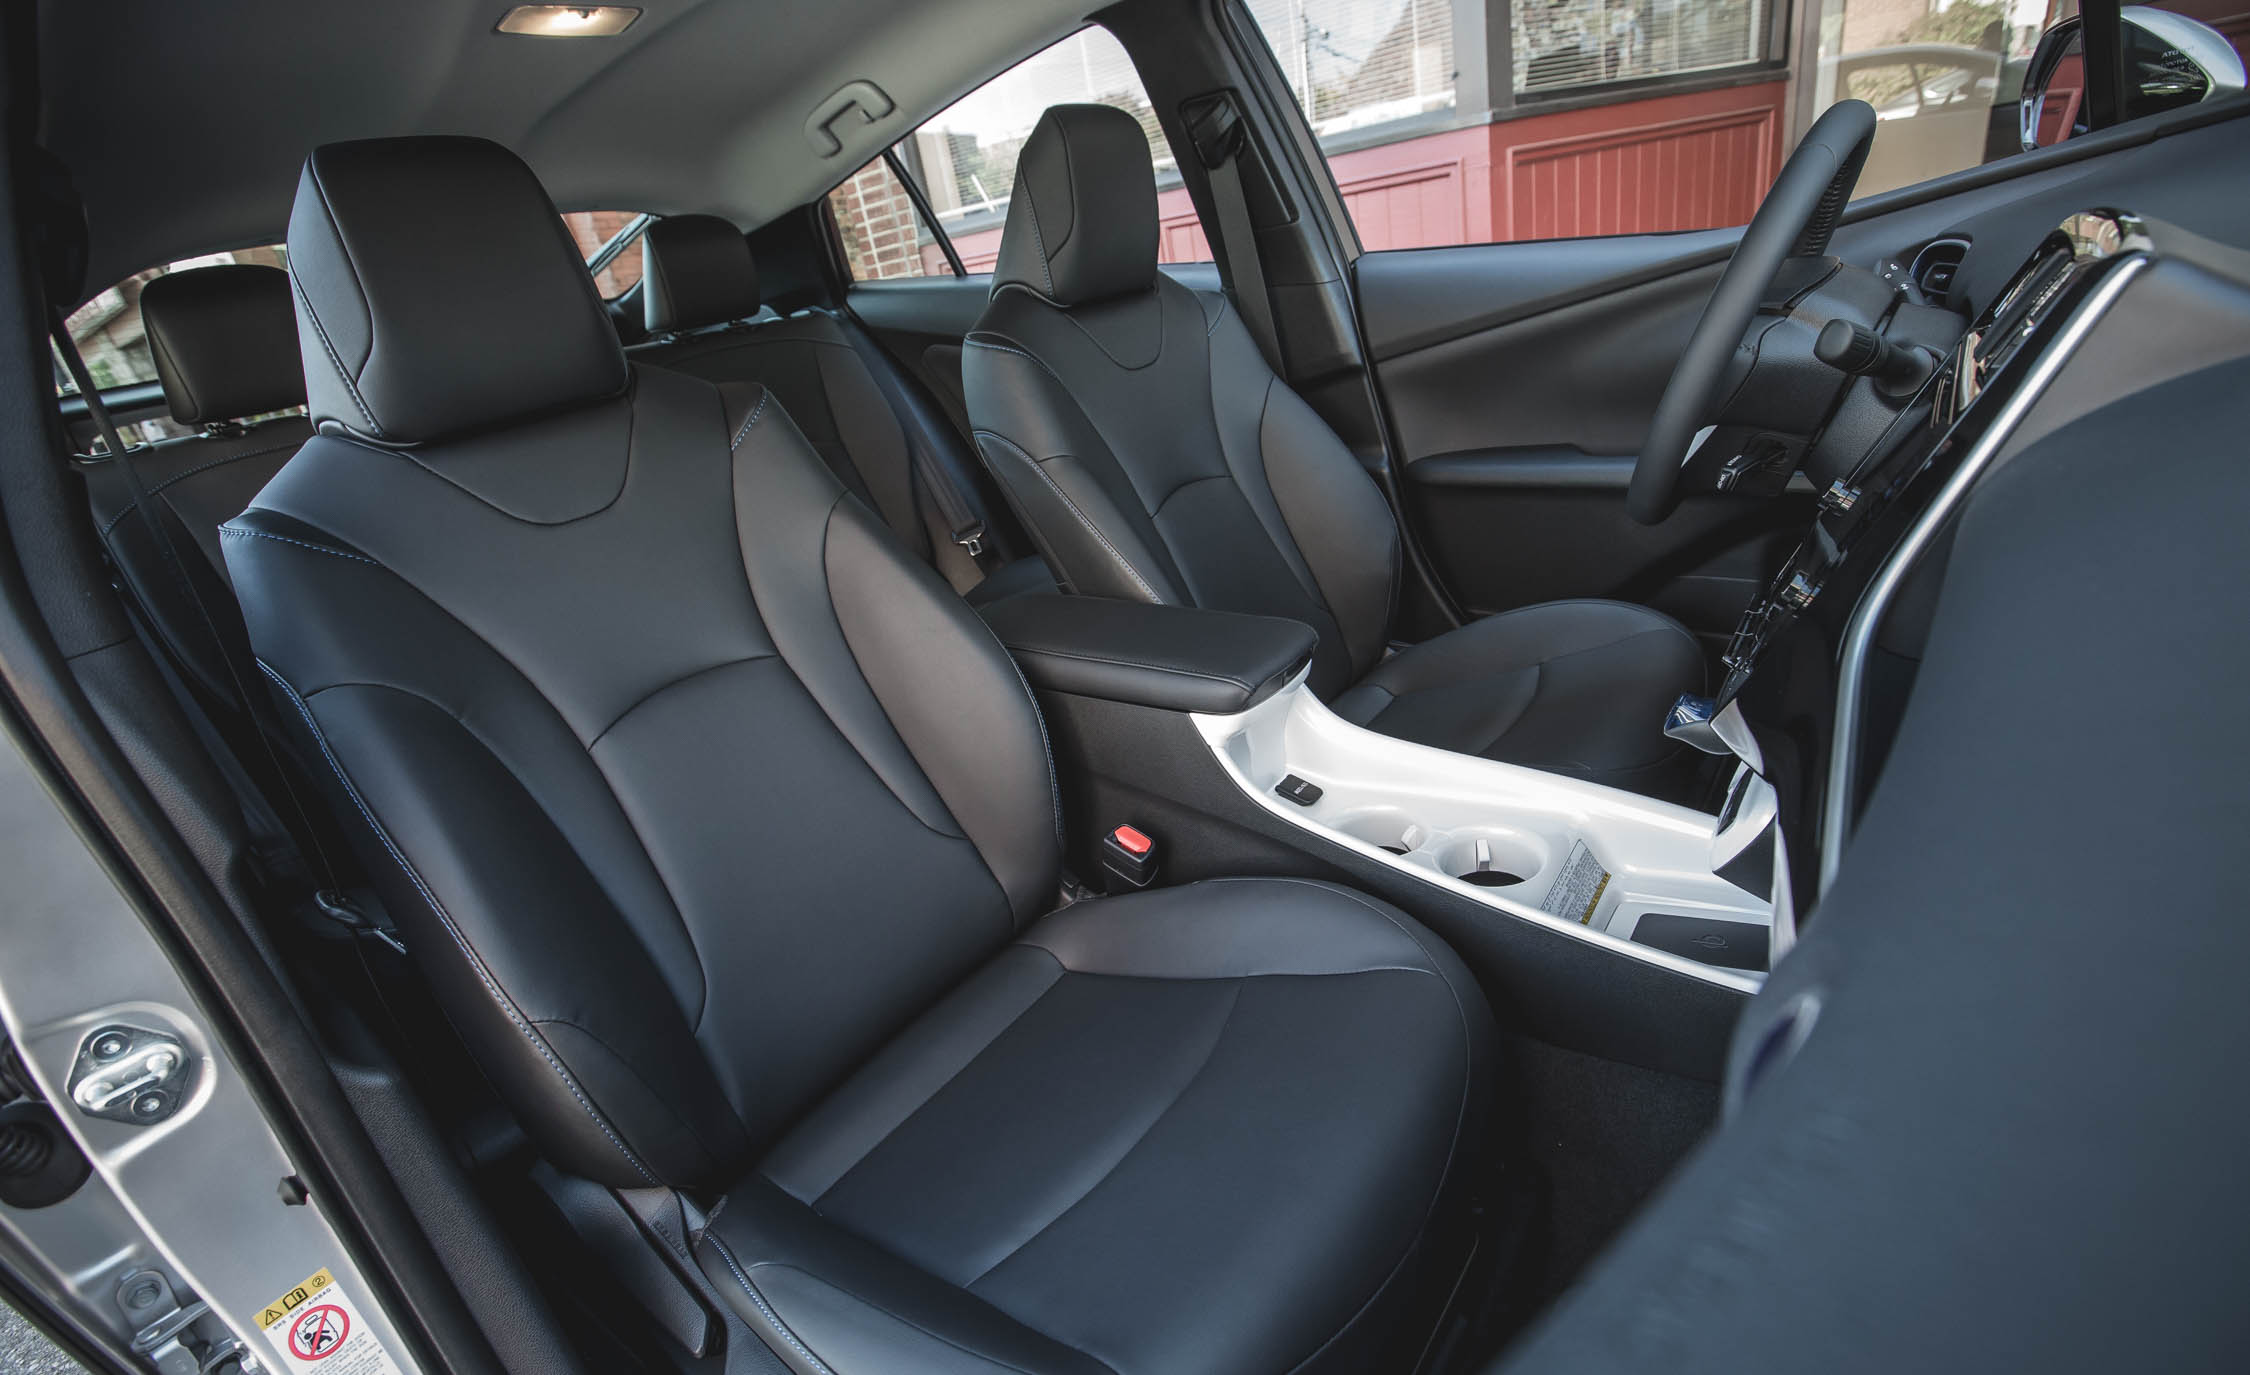 2017 Toyota Prius Interior Seats Front (Photo 44 of 64)